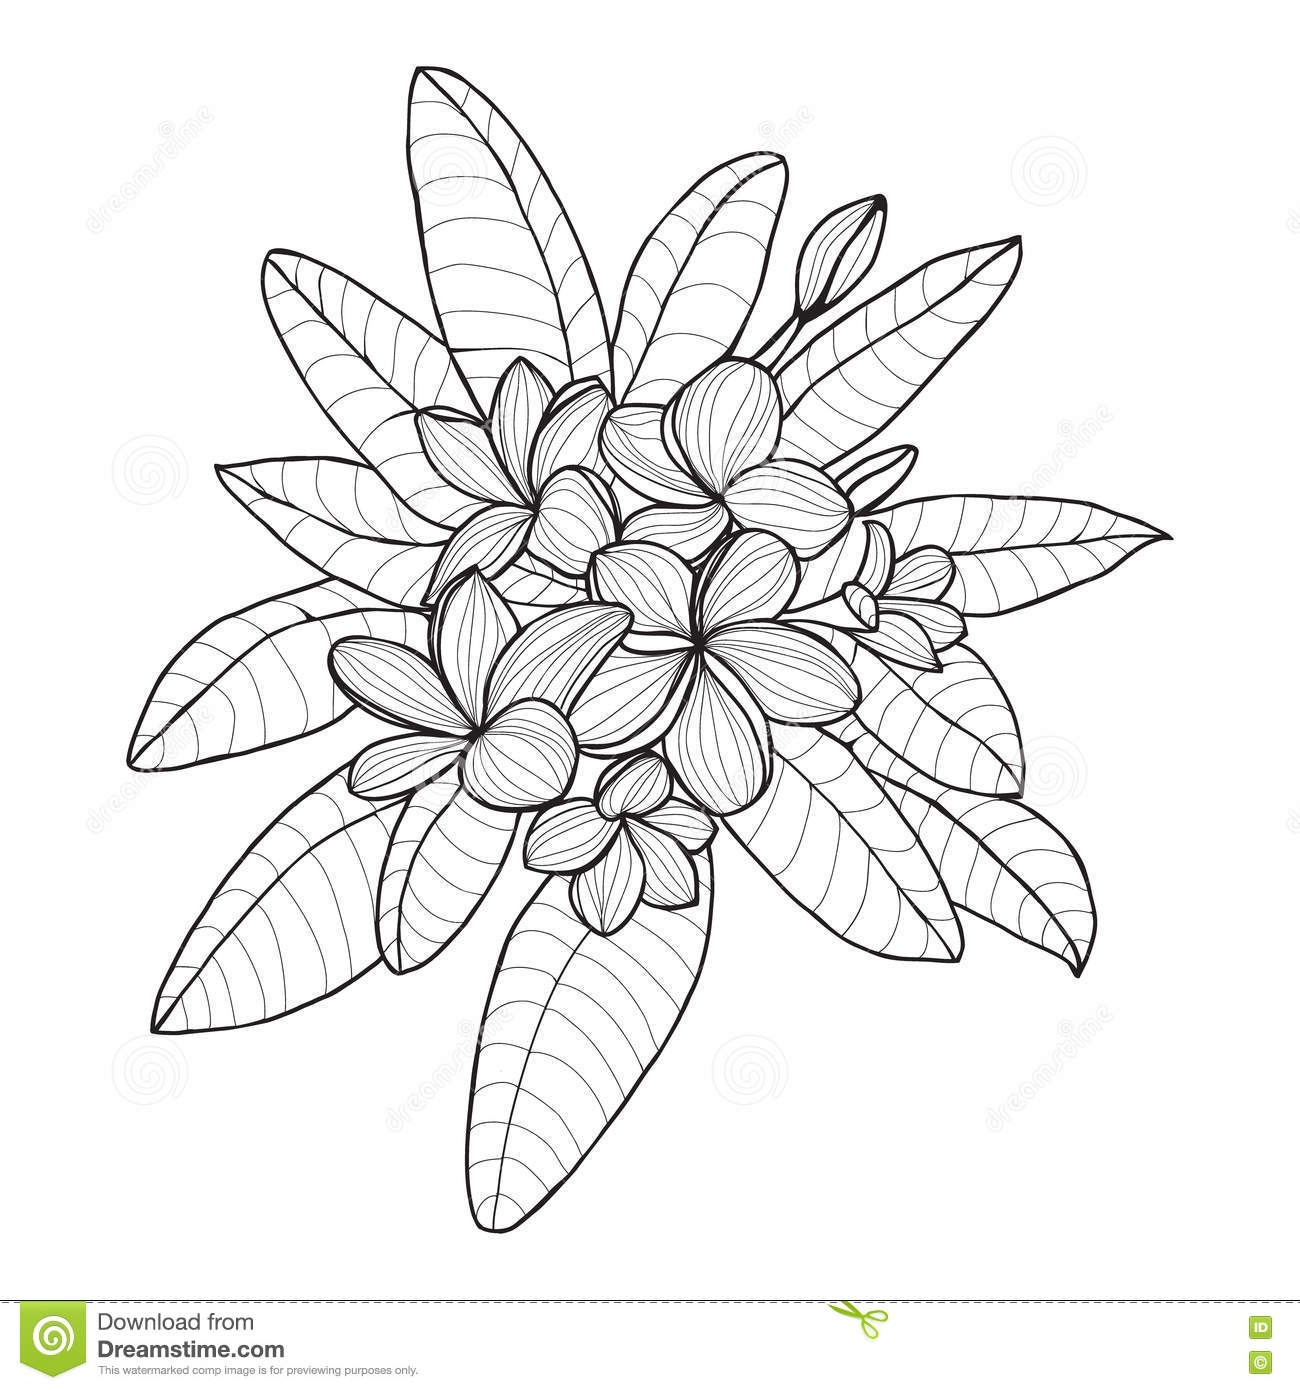 coloring pages of plumerias - photo#5